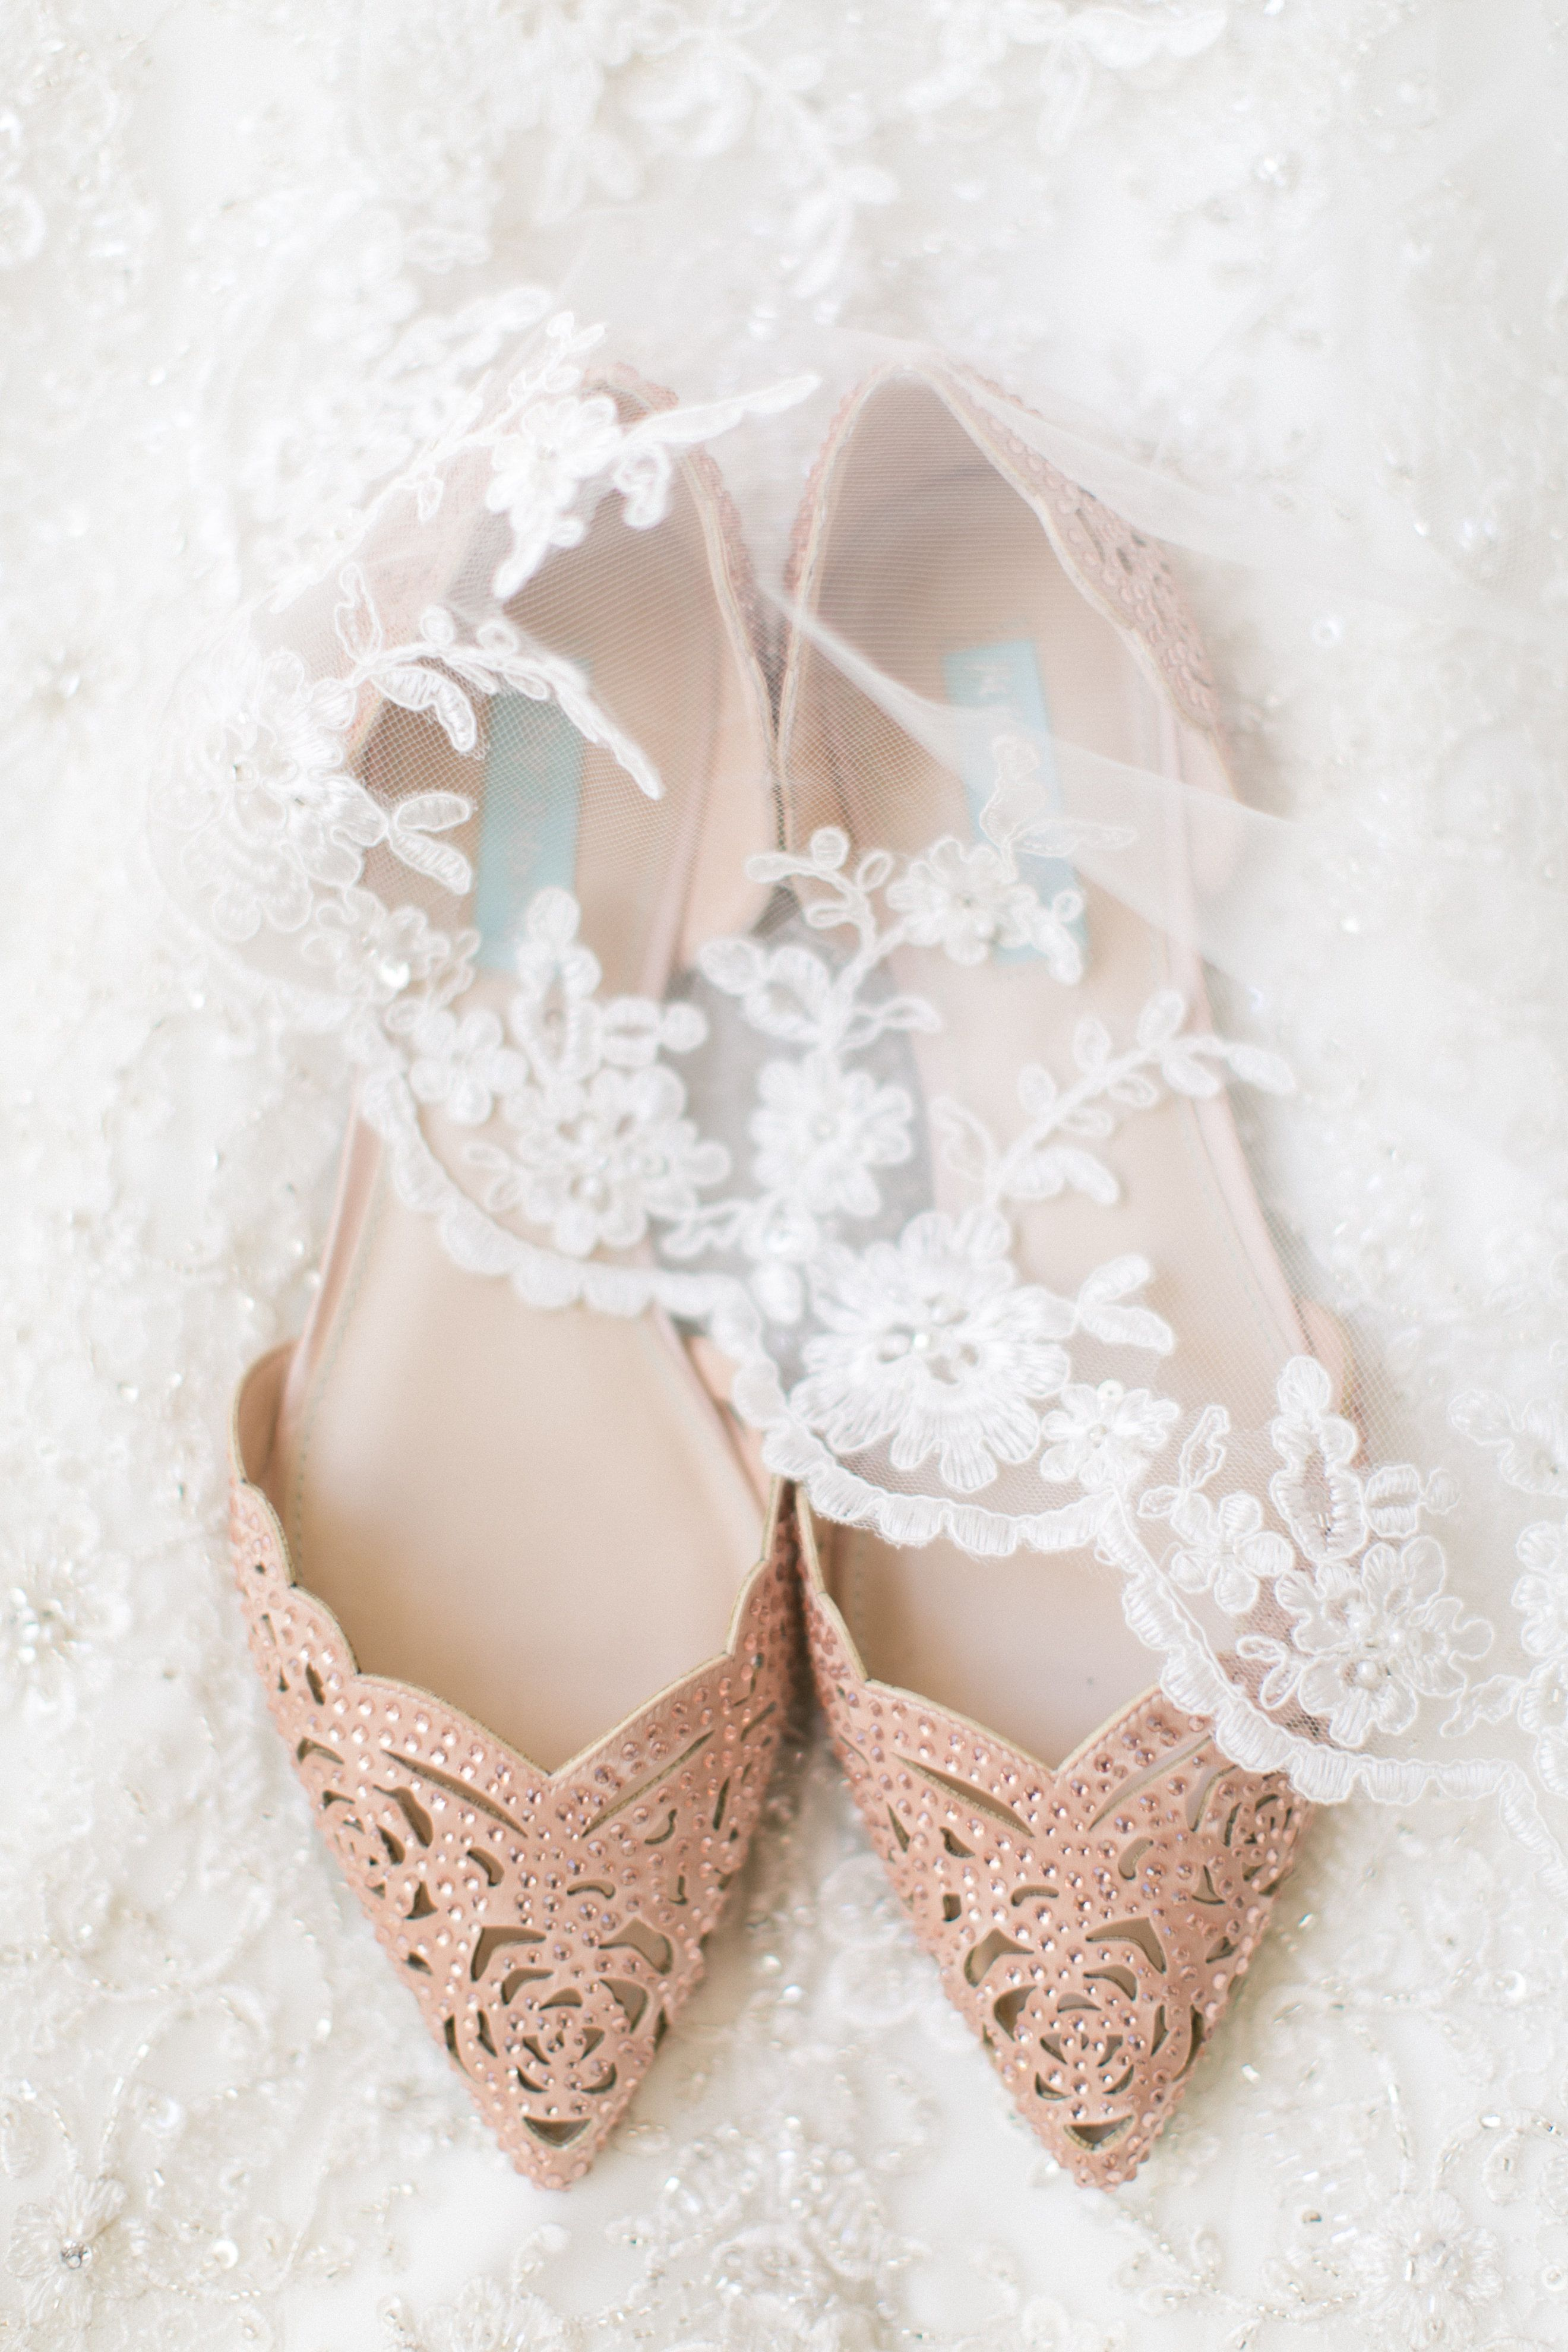 82edfd2823ba Pointed toe embellished flats  Classic Addison Park NJ Wedding  weddingshoes